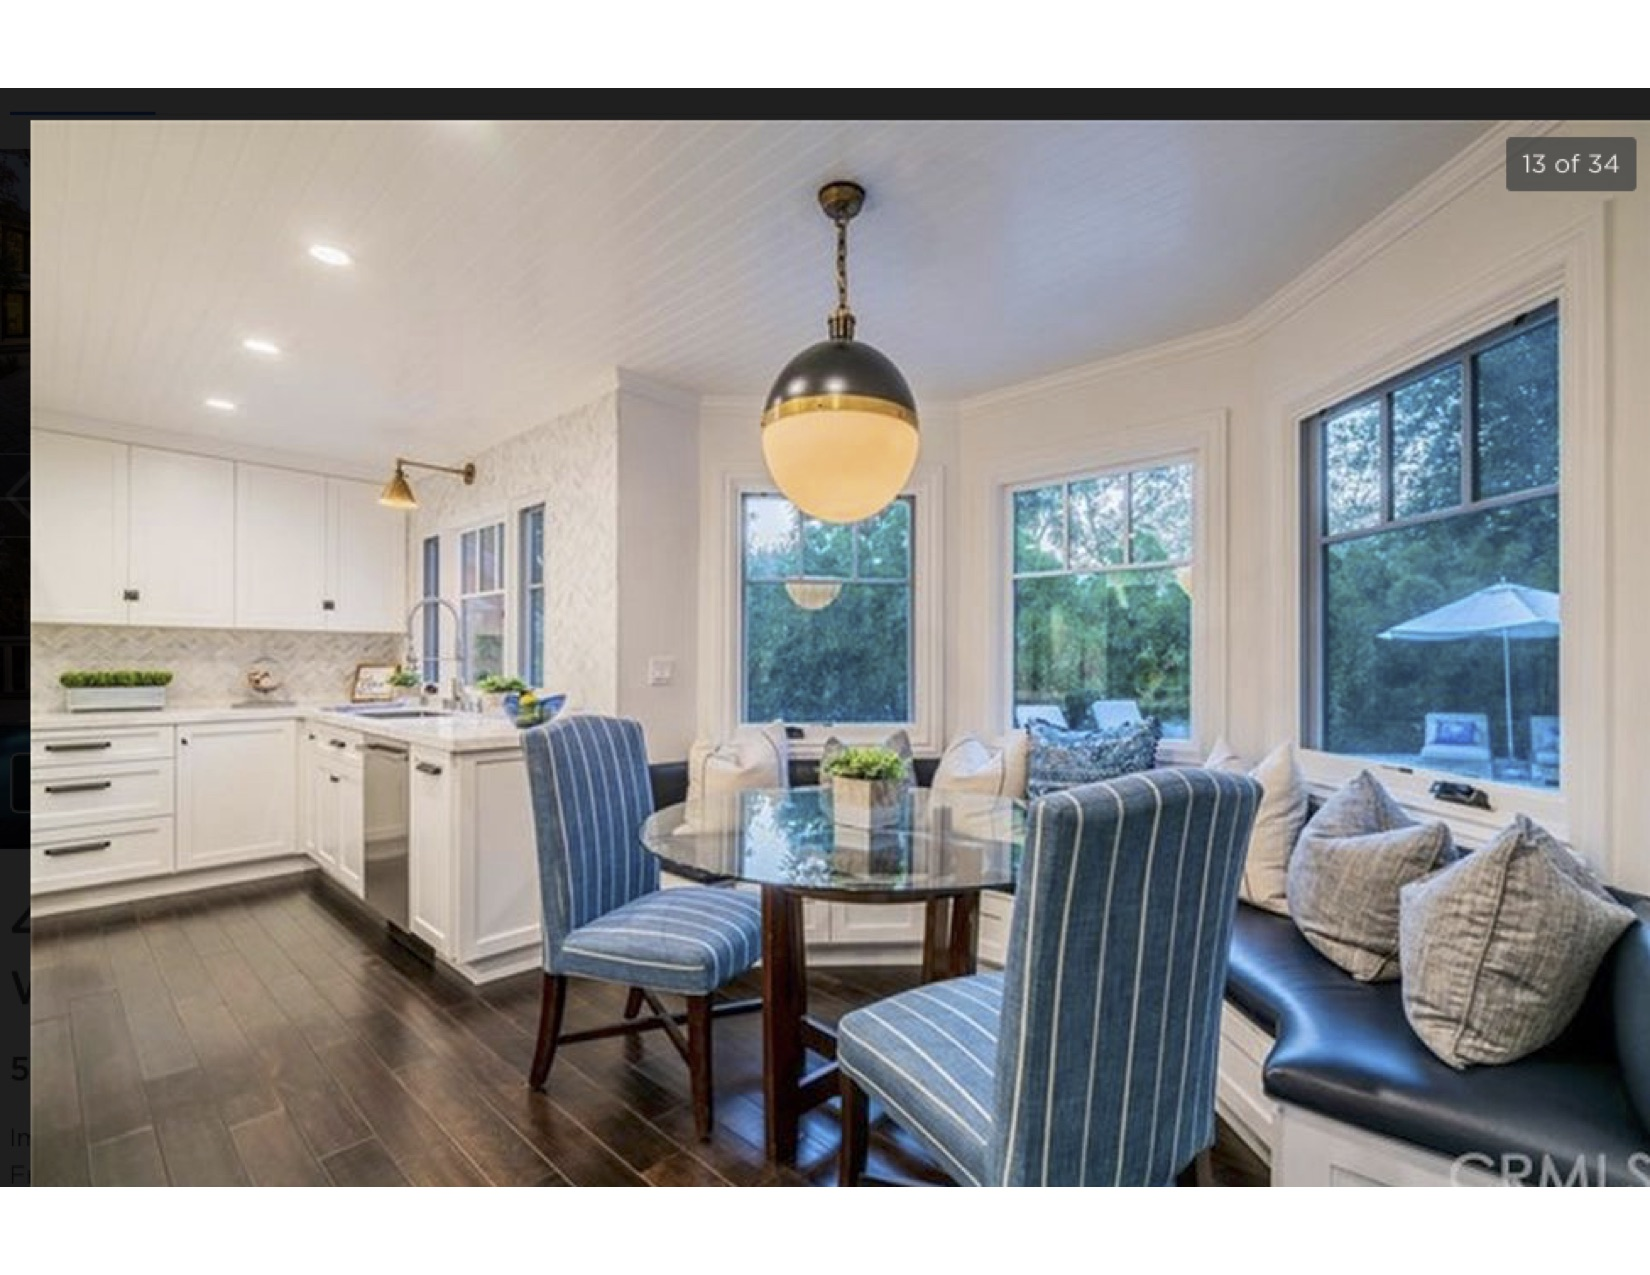 North Ranch kitchen blue chairs.jpg